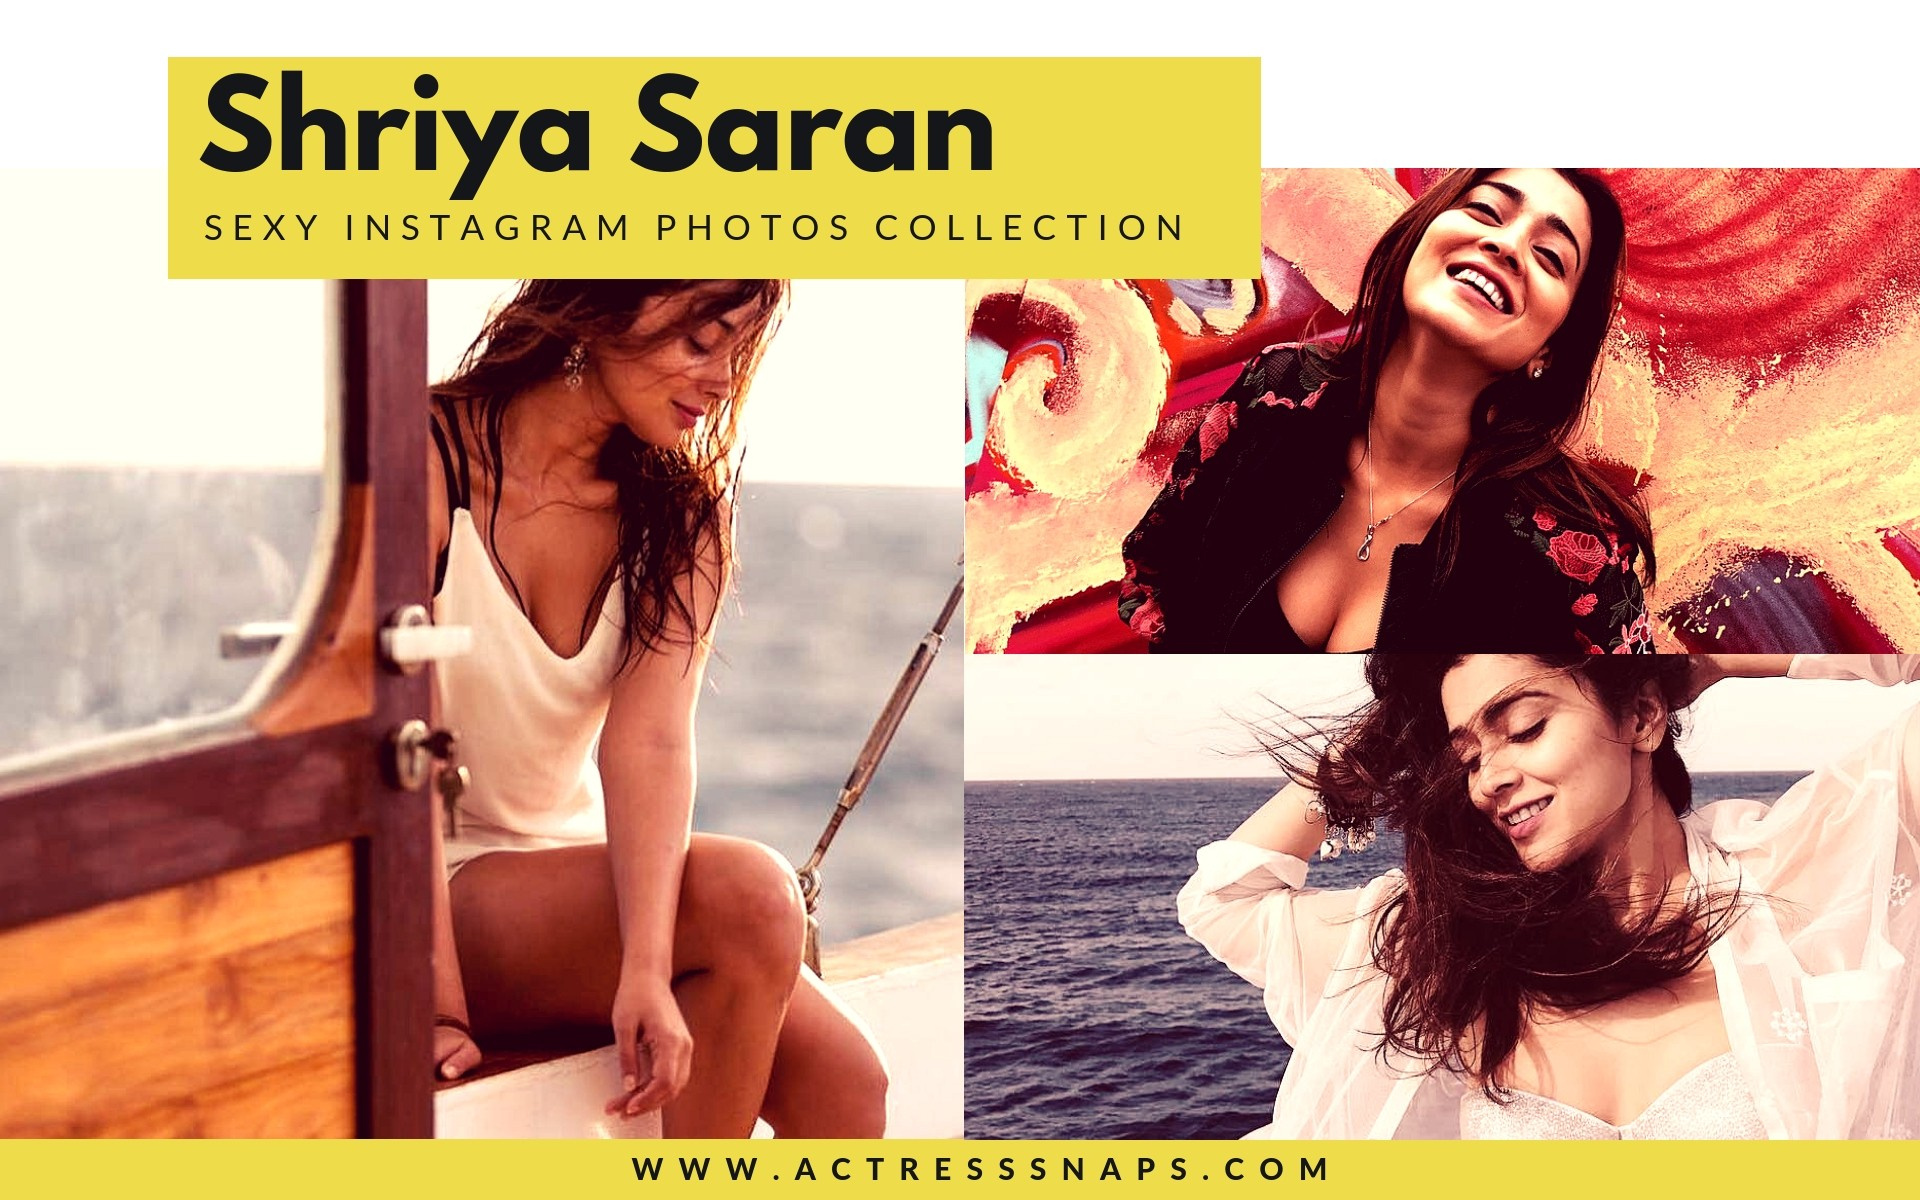 Sexy Shriya Saran Instagram Photos - Sexy Actress Pictures | Hot Actress Pictures - ActressSnaps.com